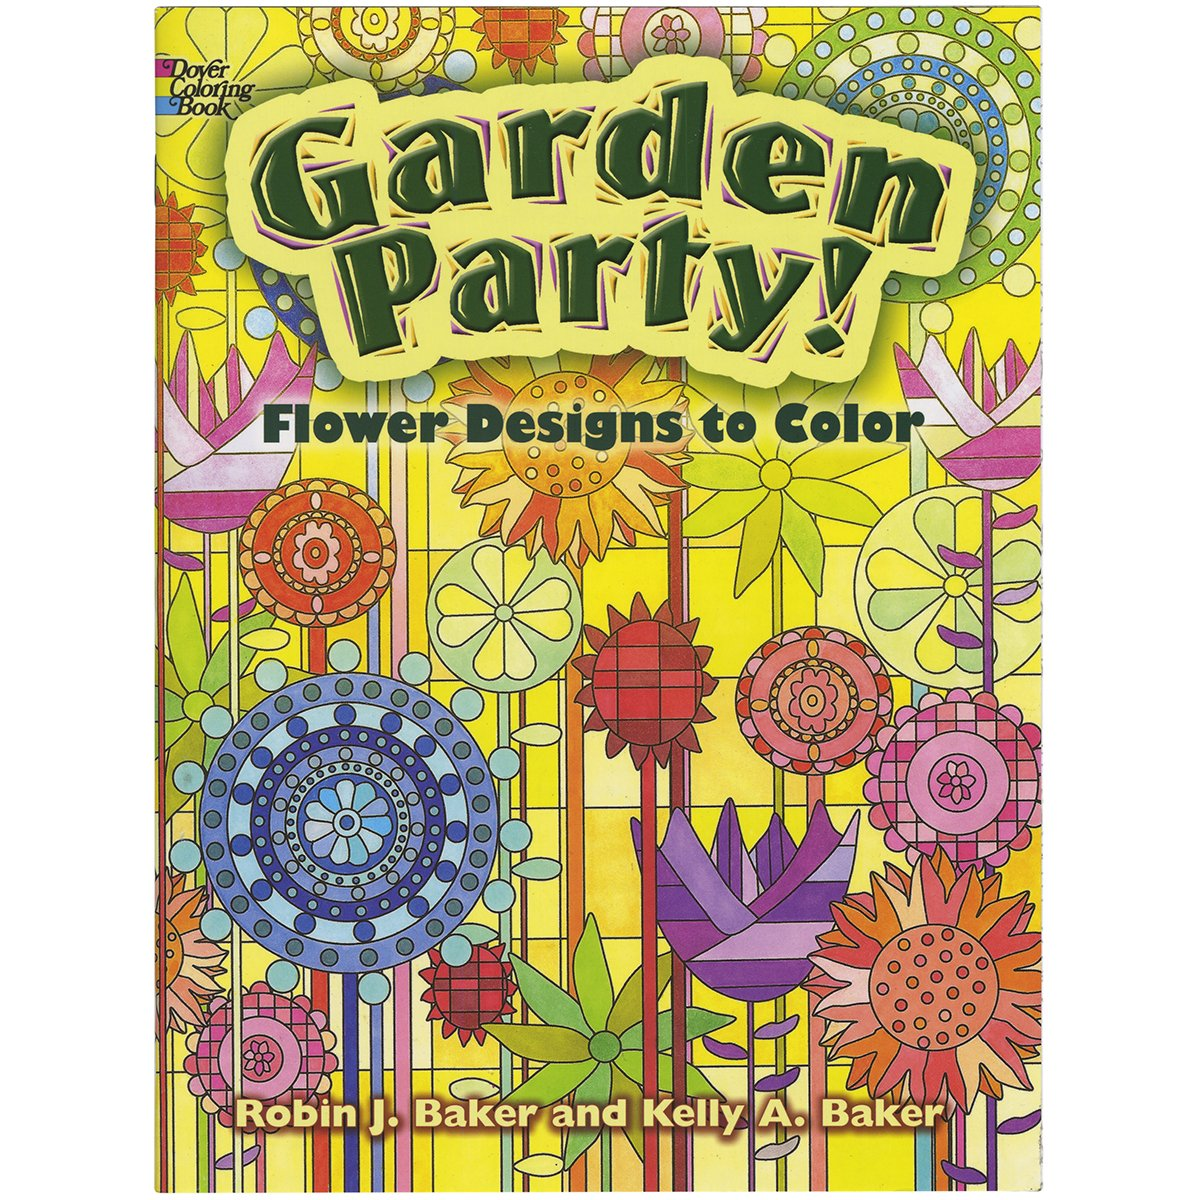 Flower designs coloring book - Flower Designs To Color Dover Nature Coloring Book Kelly A Baker 0499991631636 Amazon Com Books